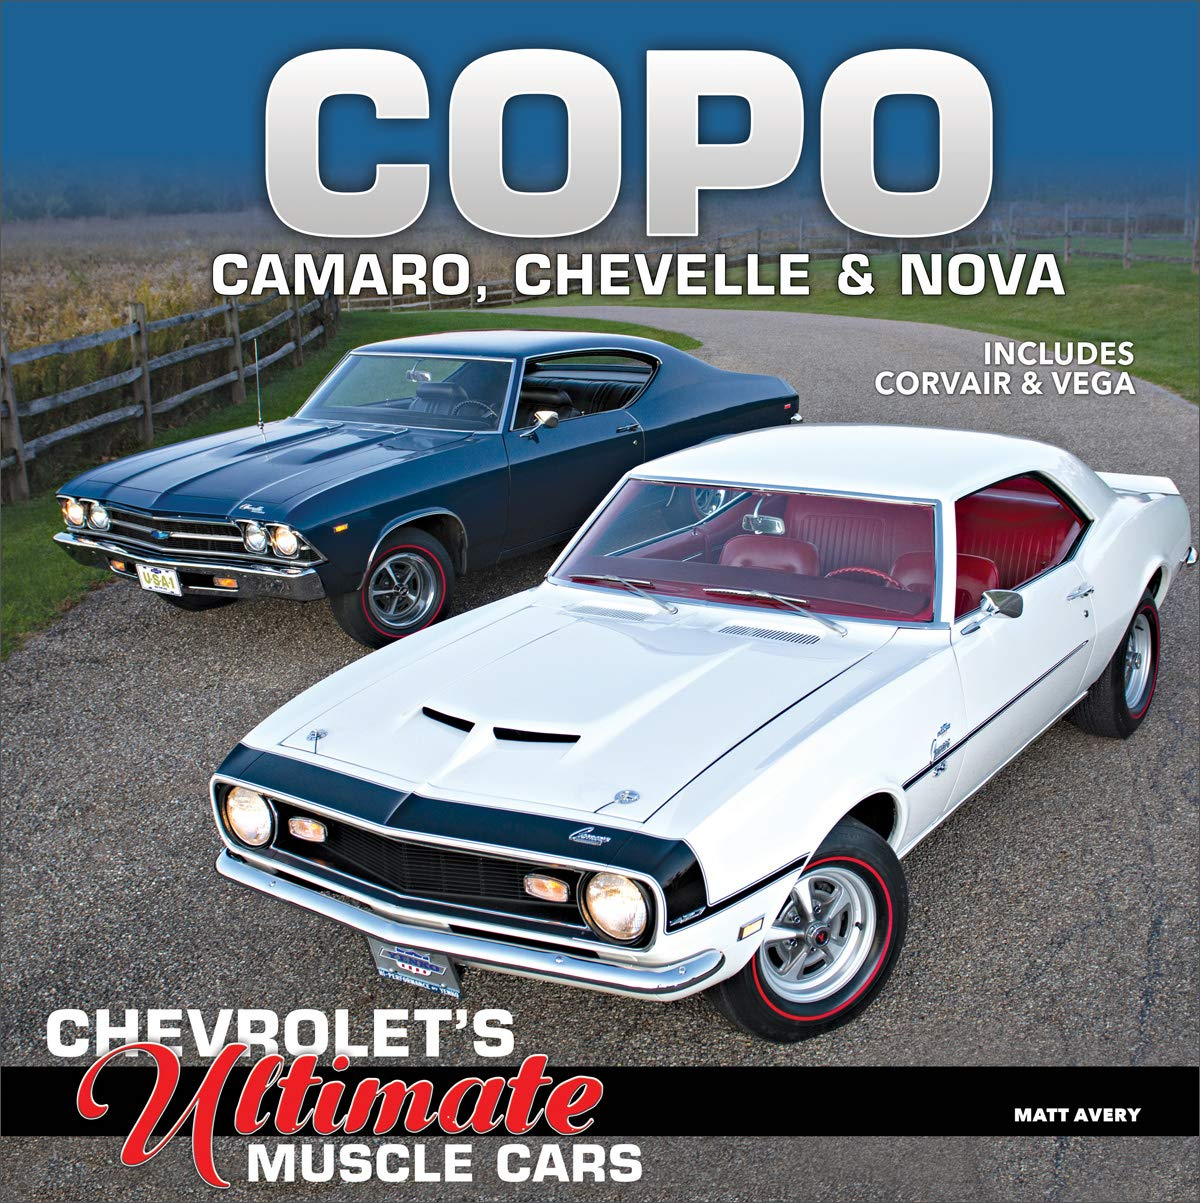 Copo Camaro Chevelle Nova Chevrolet S Ultimate Muscle Cars Matt